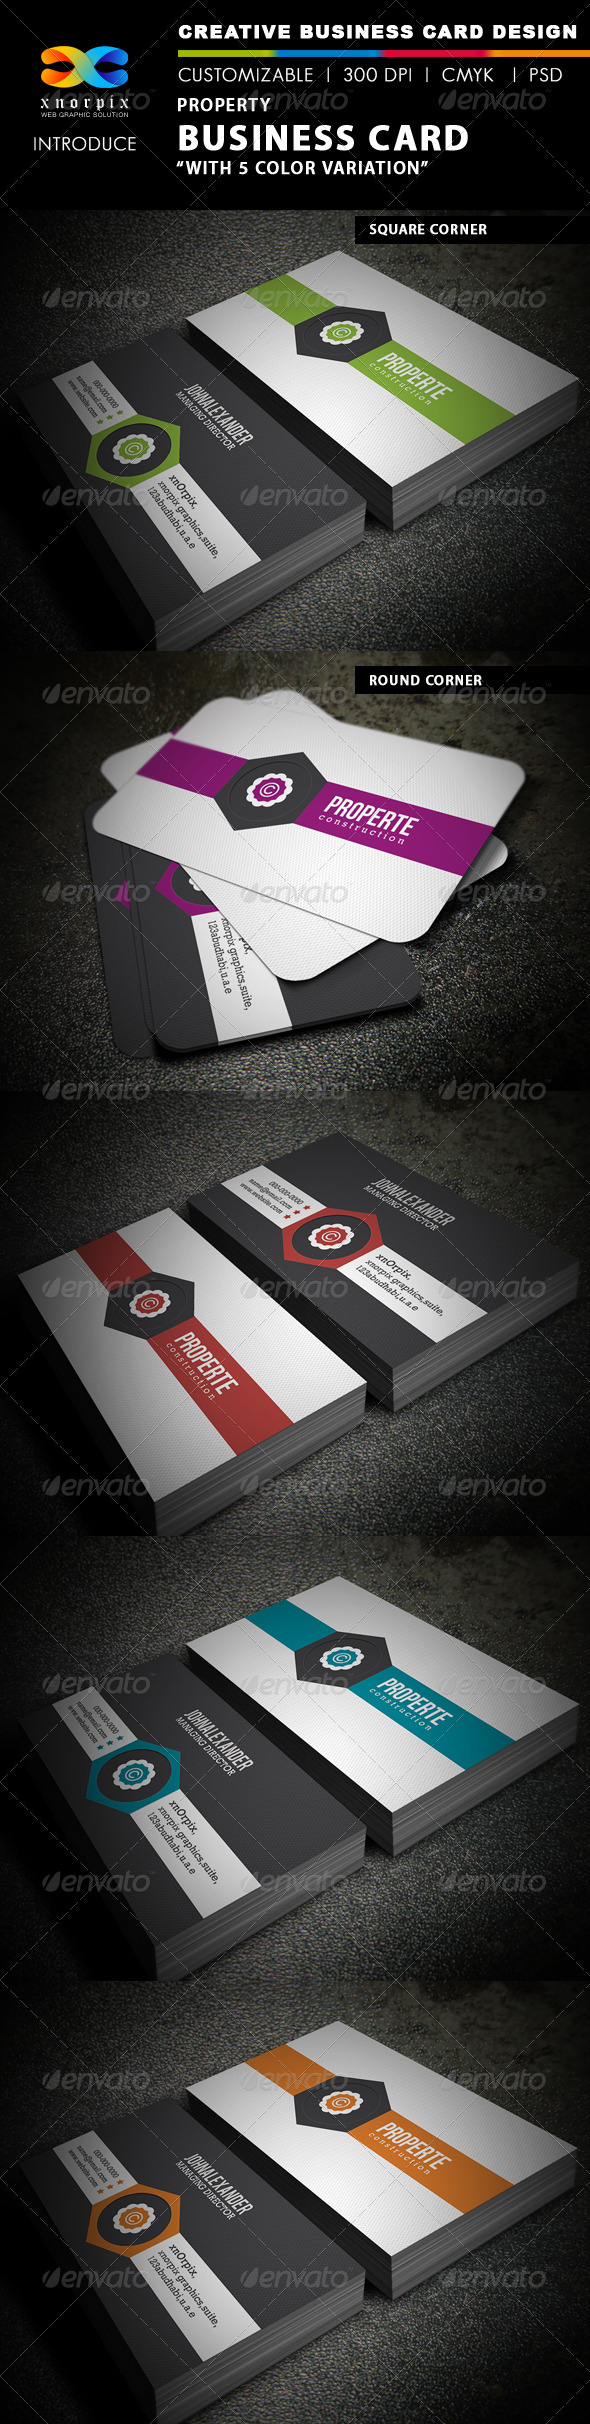 Property Business Card - Creative Business Cards